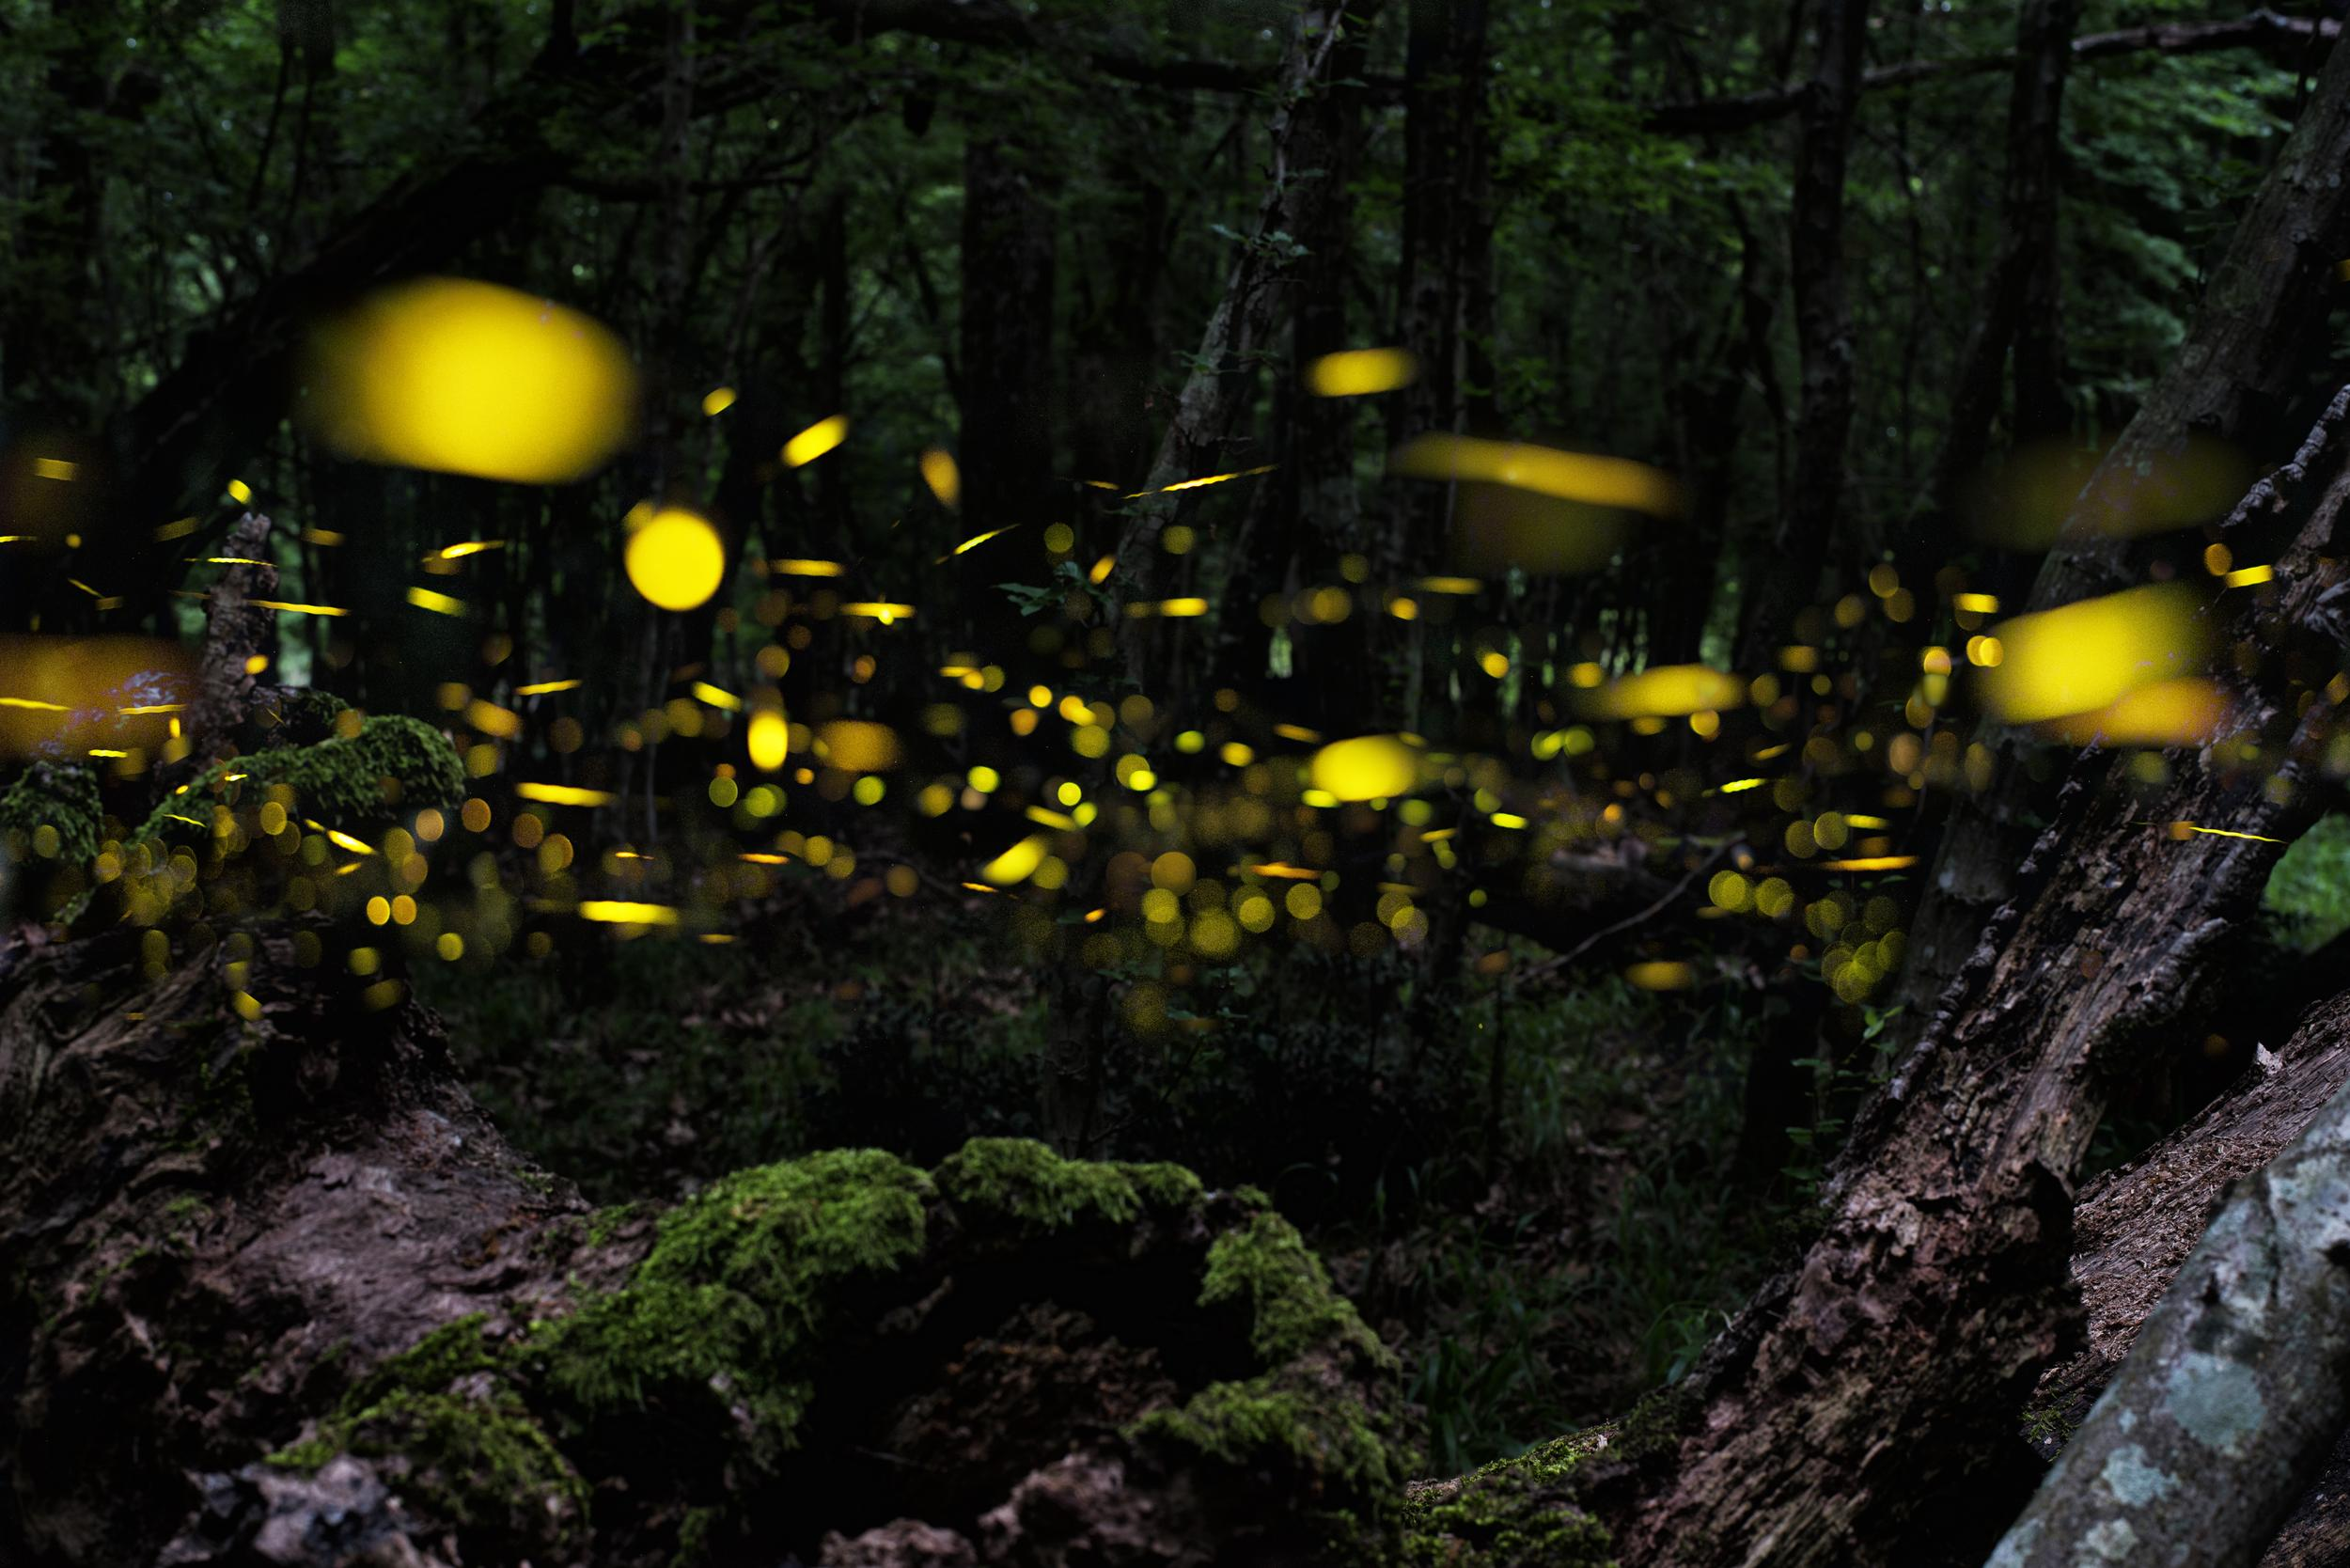 Firefly. Night in the forest with fireflies. Multiplication.